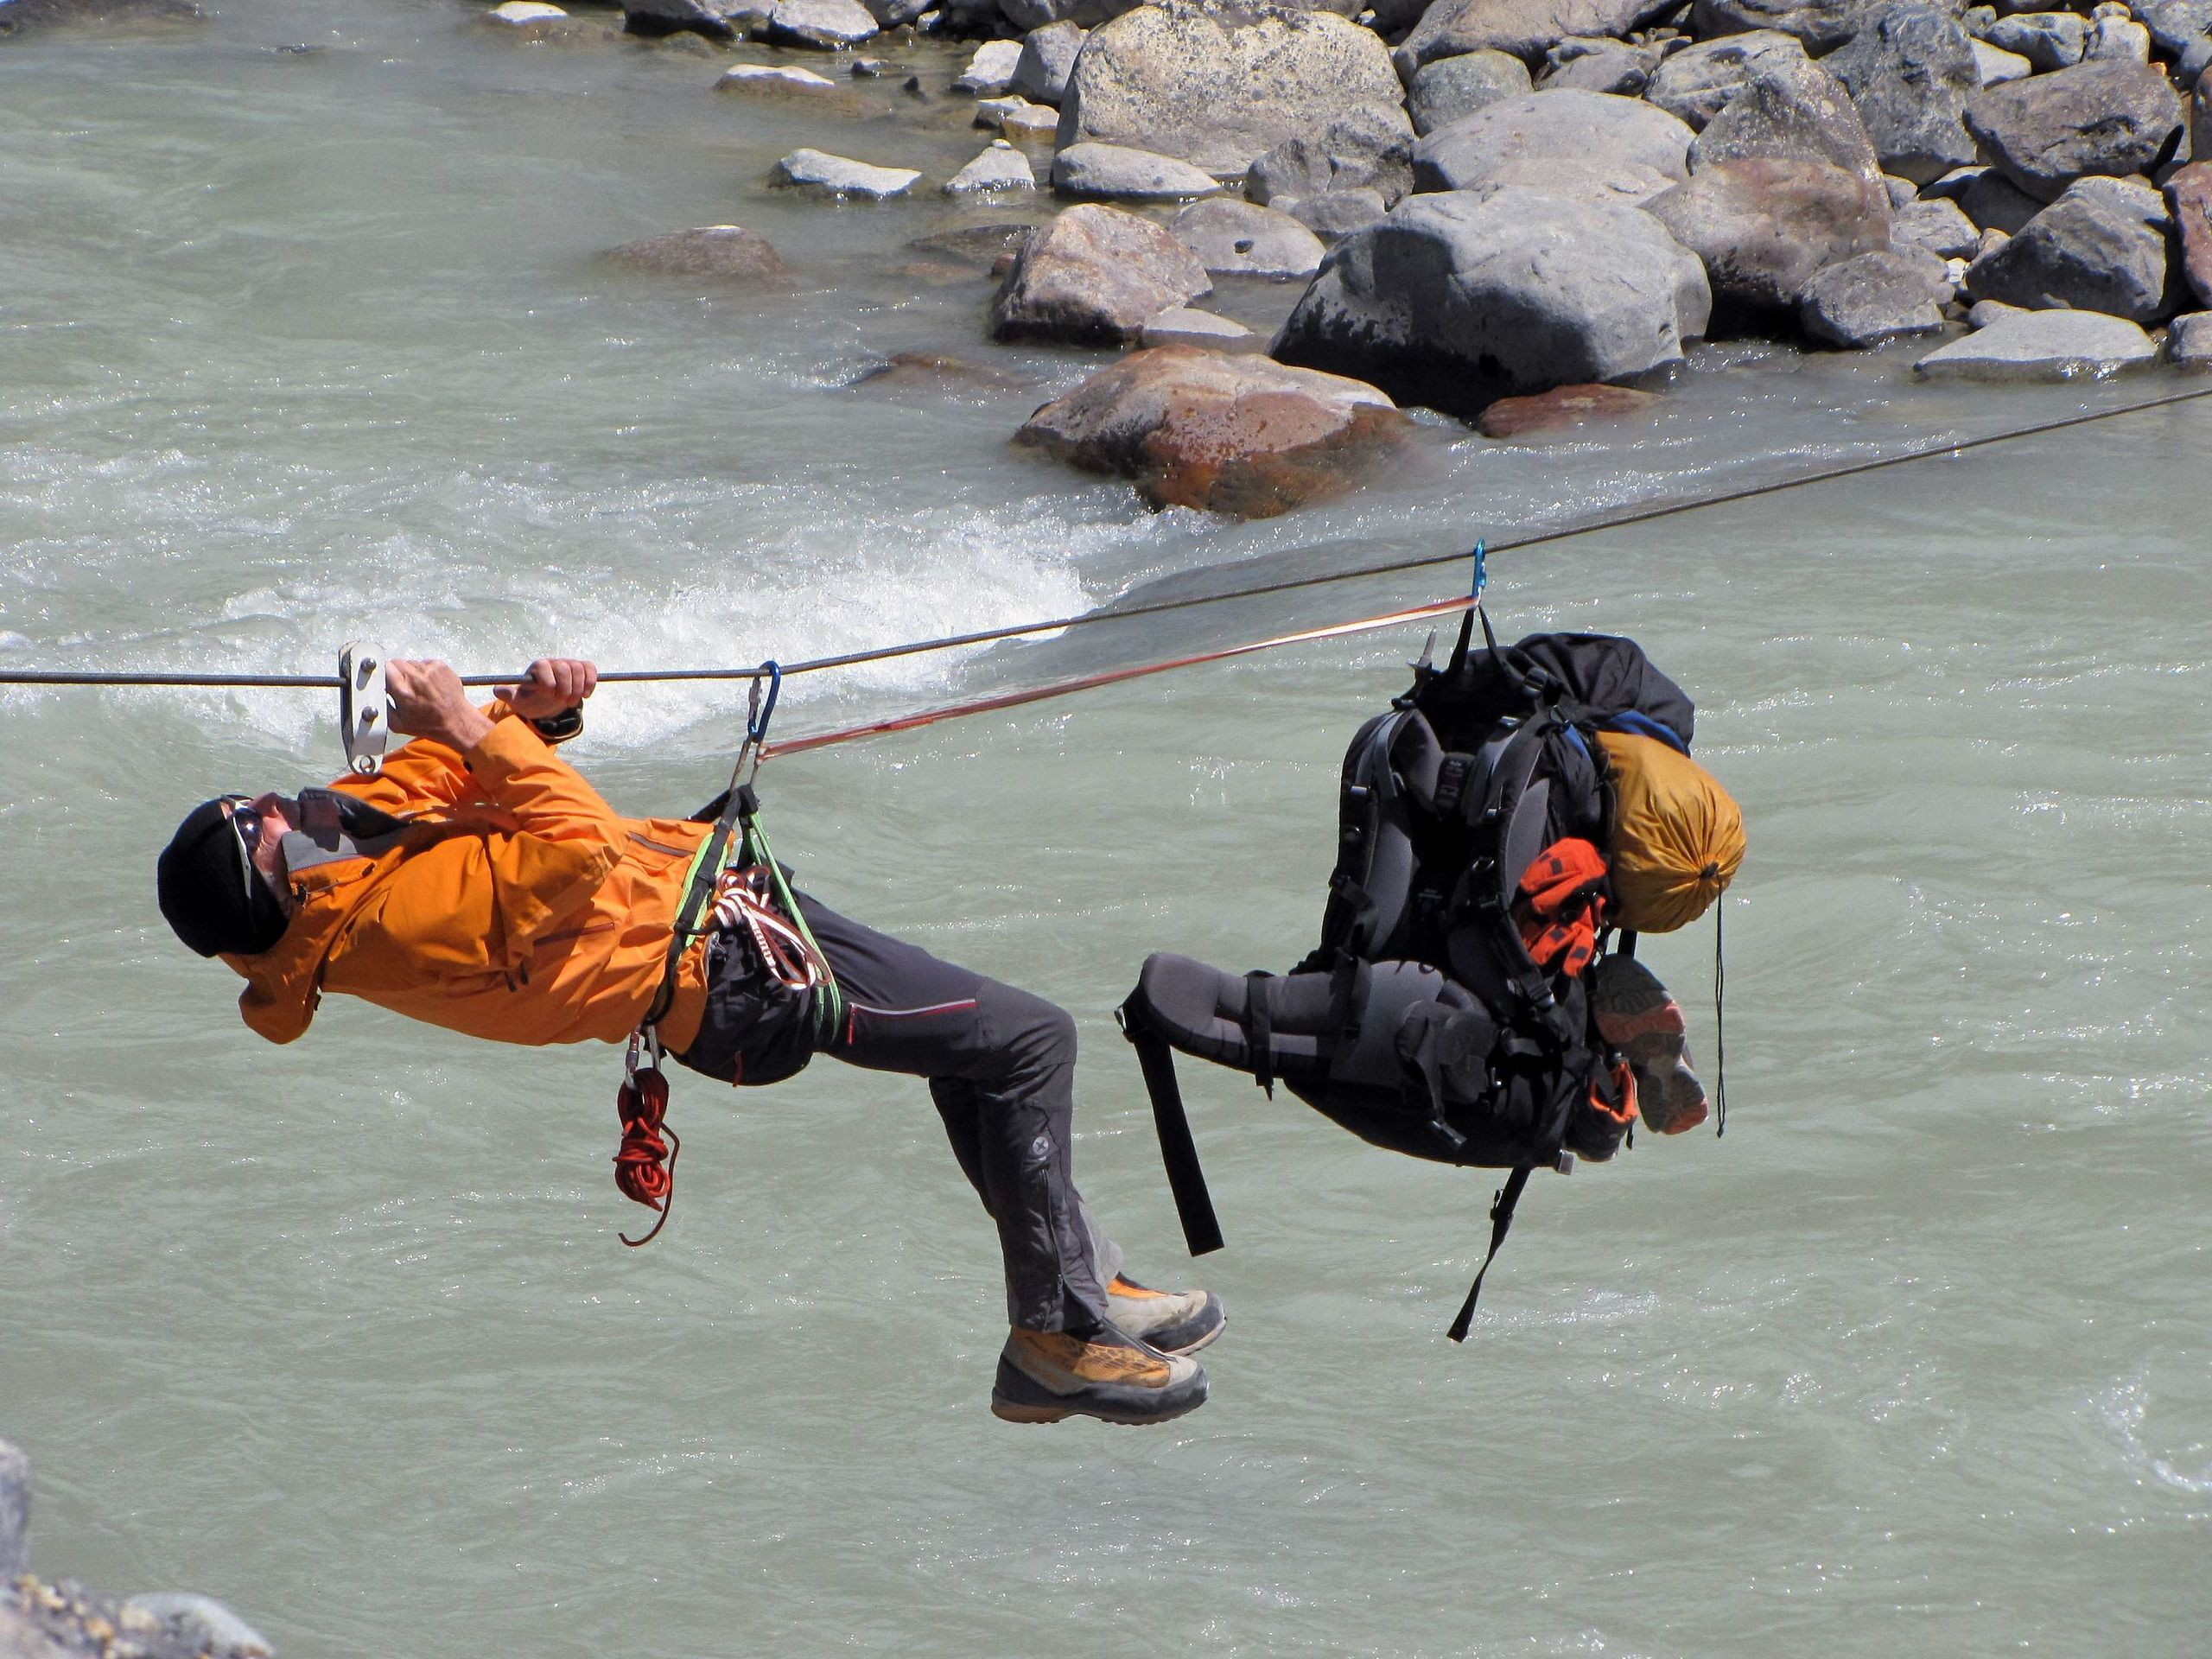 Climber uses tyrolean traverse to cross a Rio Fitz Roy in Argentina Image source